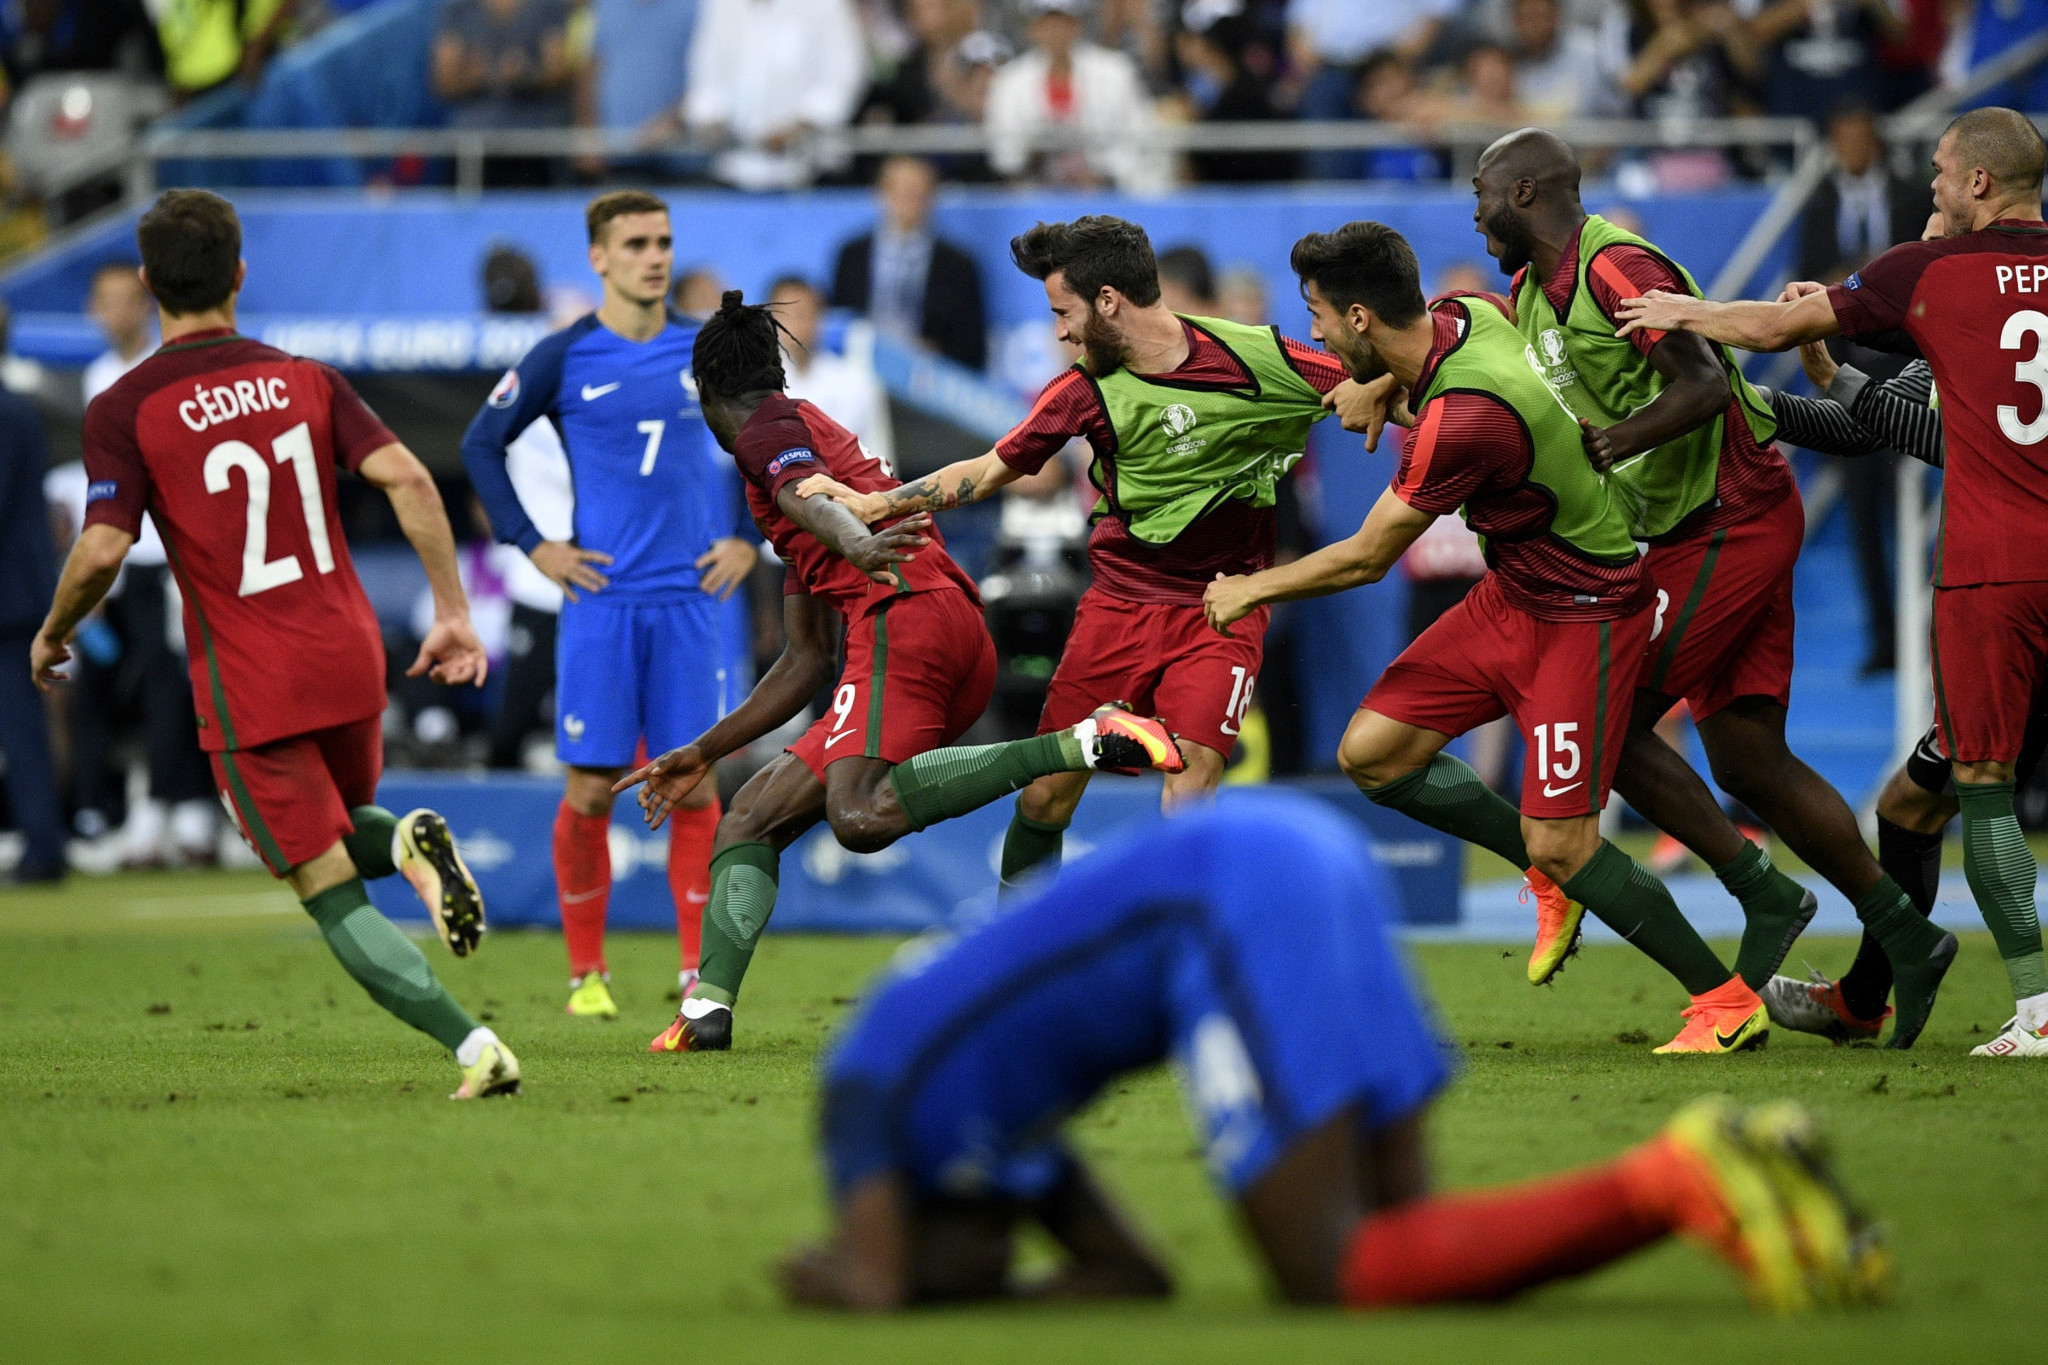 France appeared set to win Euro 2016 on home turf, but were upset by Portugal in the final ©Getty Images